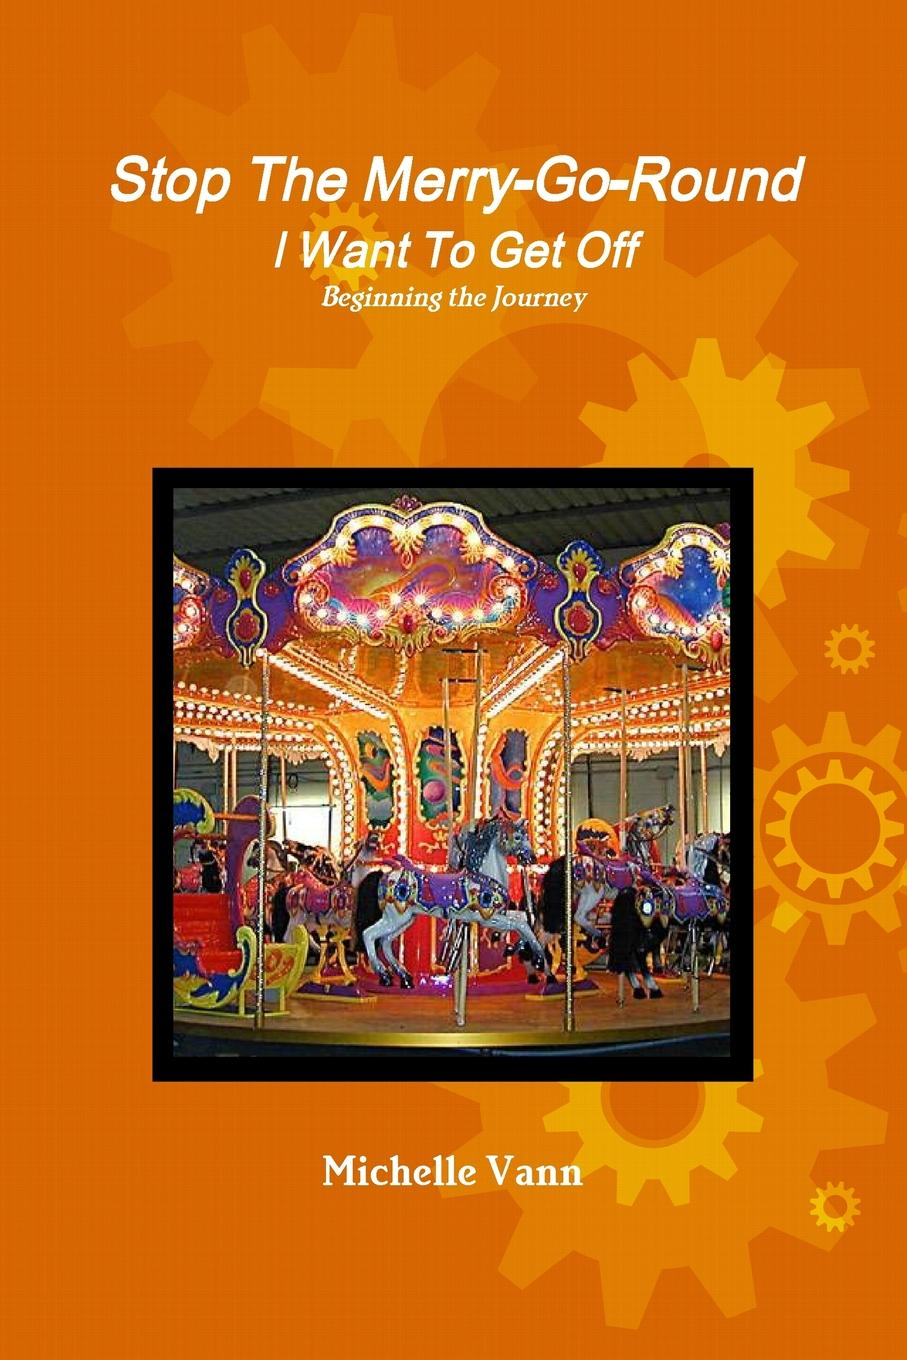 Michelle Vann Stop The Merry-Go-Round I Want To Get Off anime one piece going merry model garage kit pvc action figure classic collection toy for children